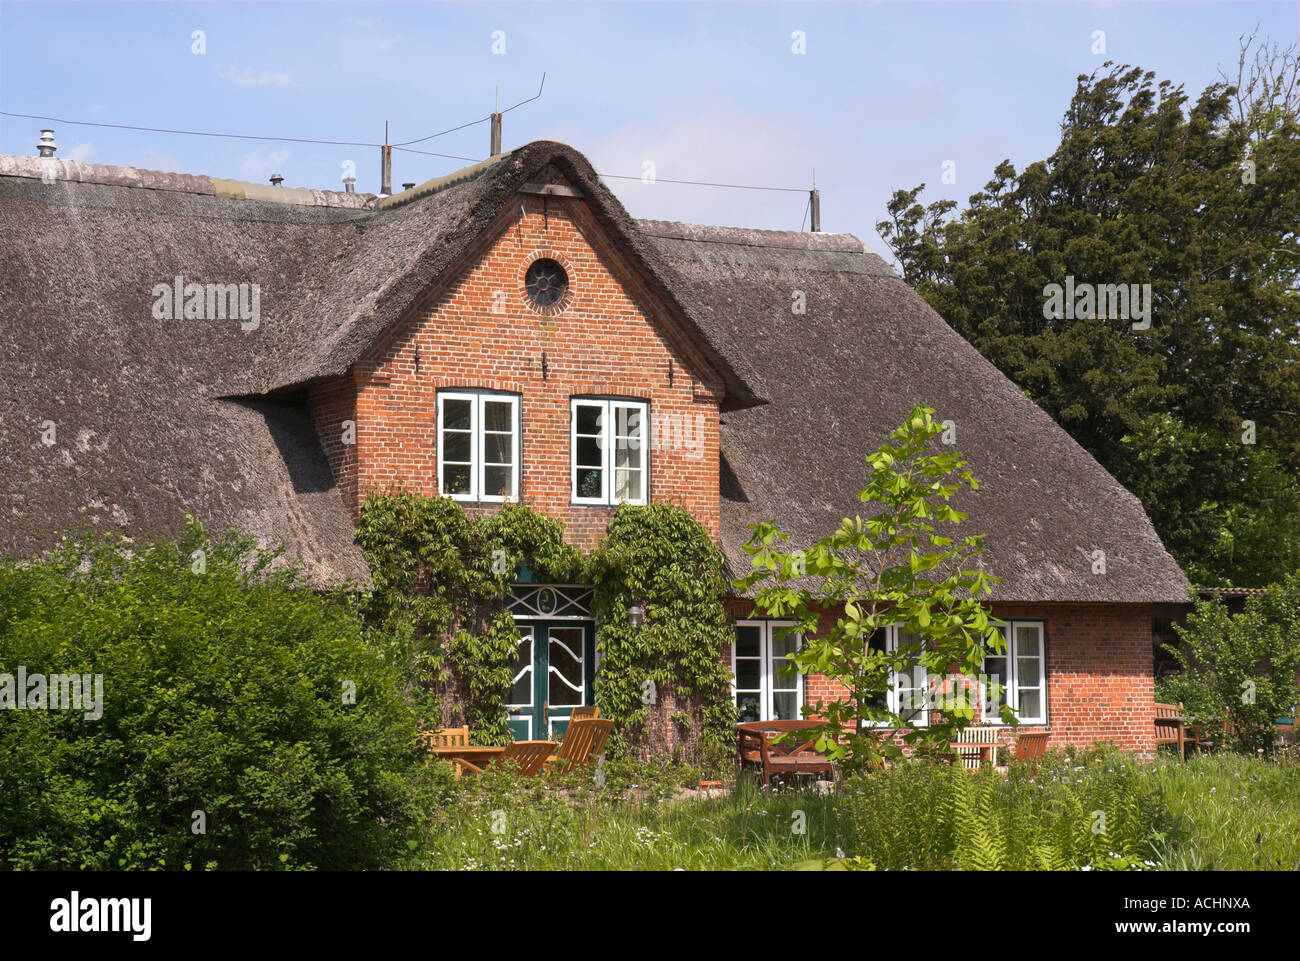 keitum sylt germany stock photos keitum sylt germany stock images alamy. Black Bedroom Furniture Sets. Home Design Ideas